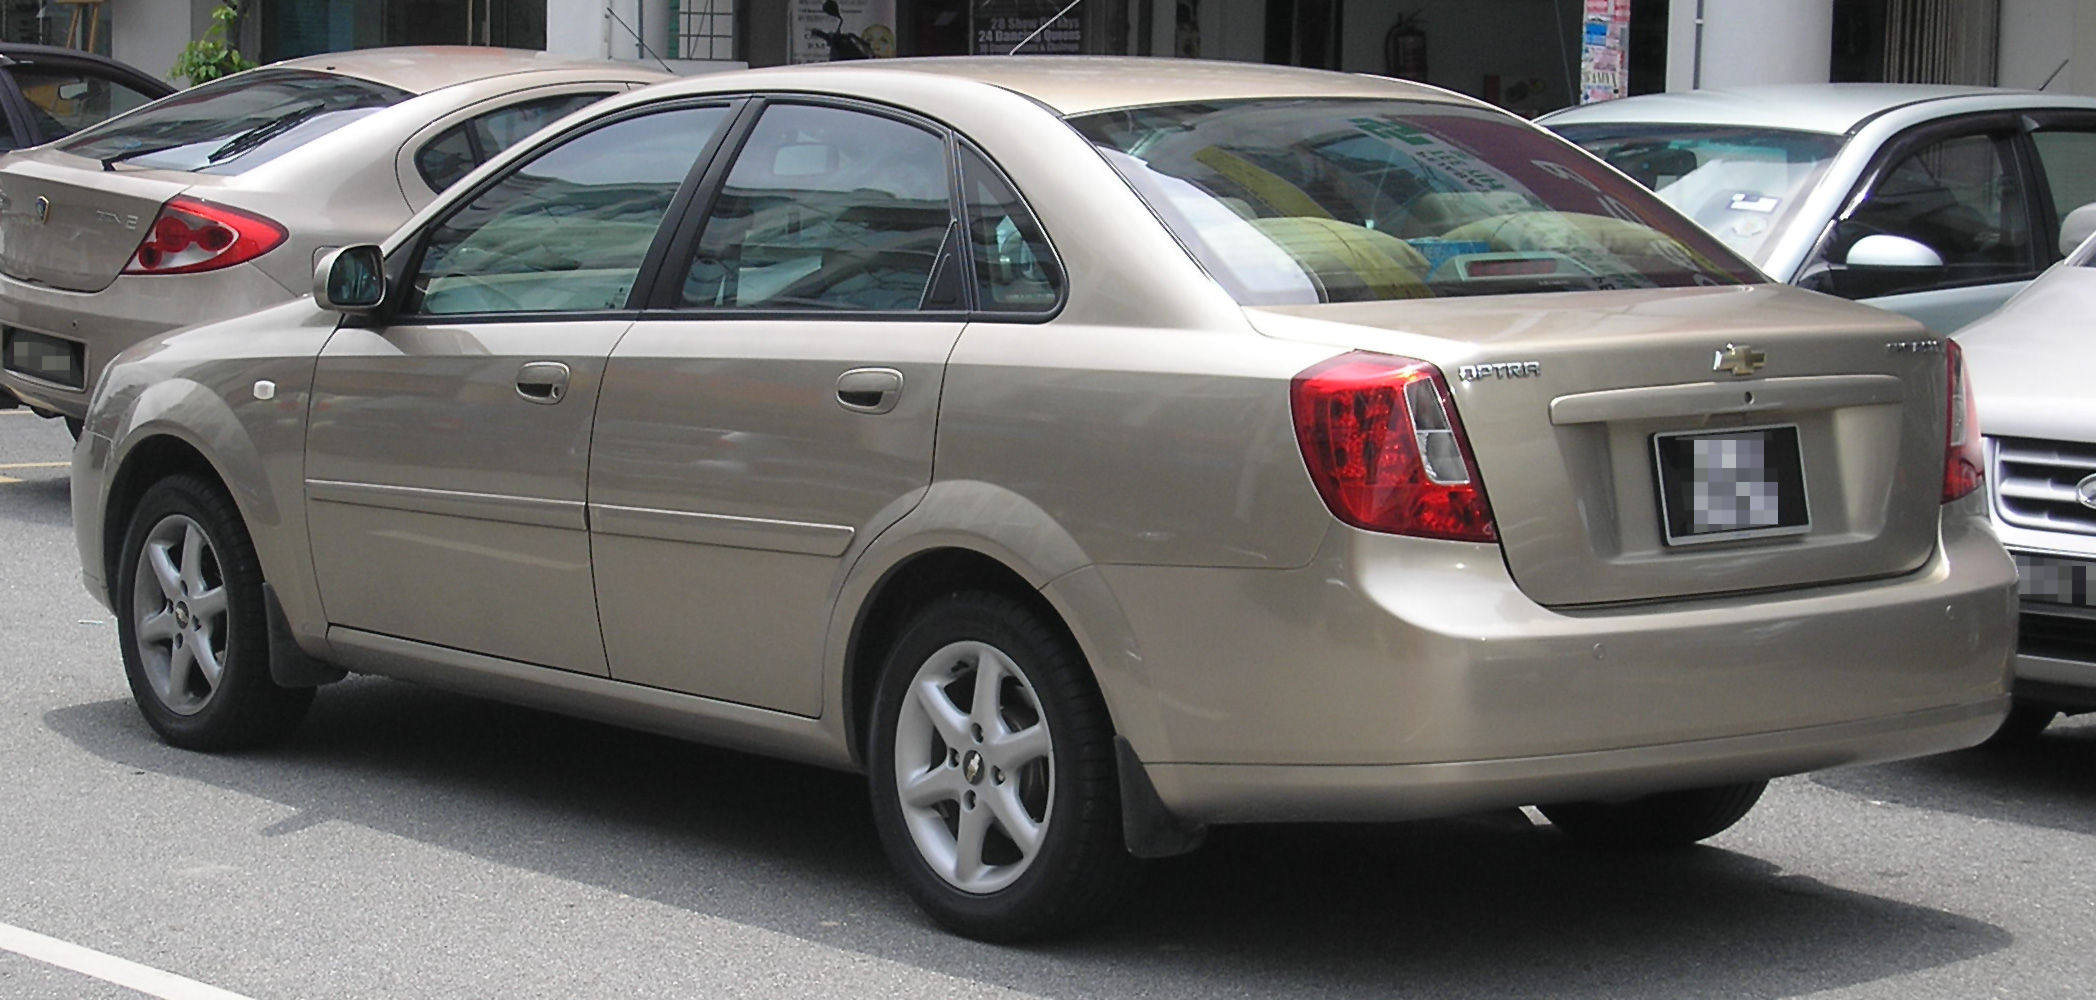 Chevrolet optra photo - 2